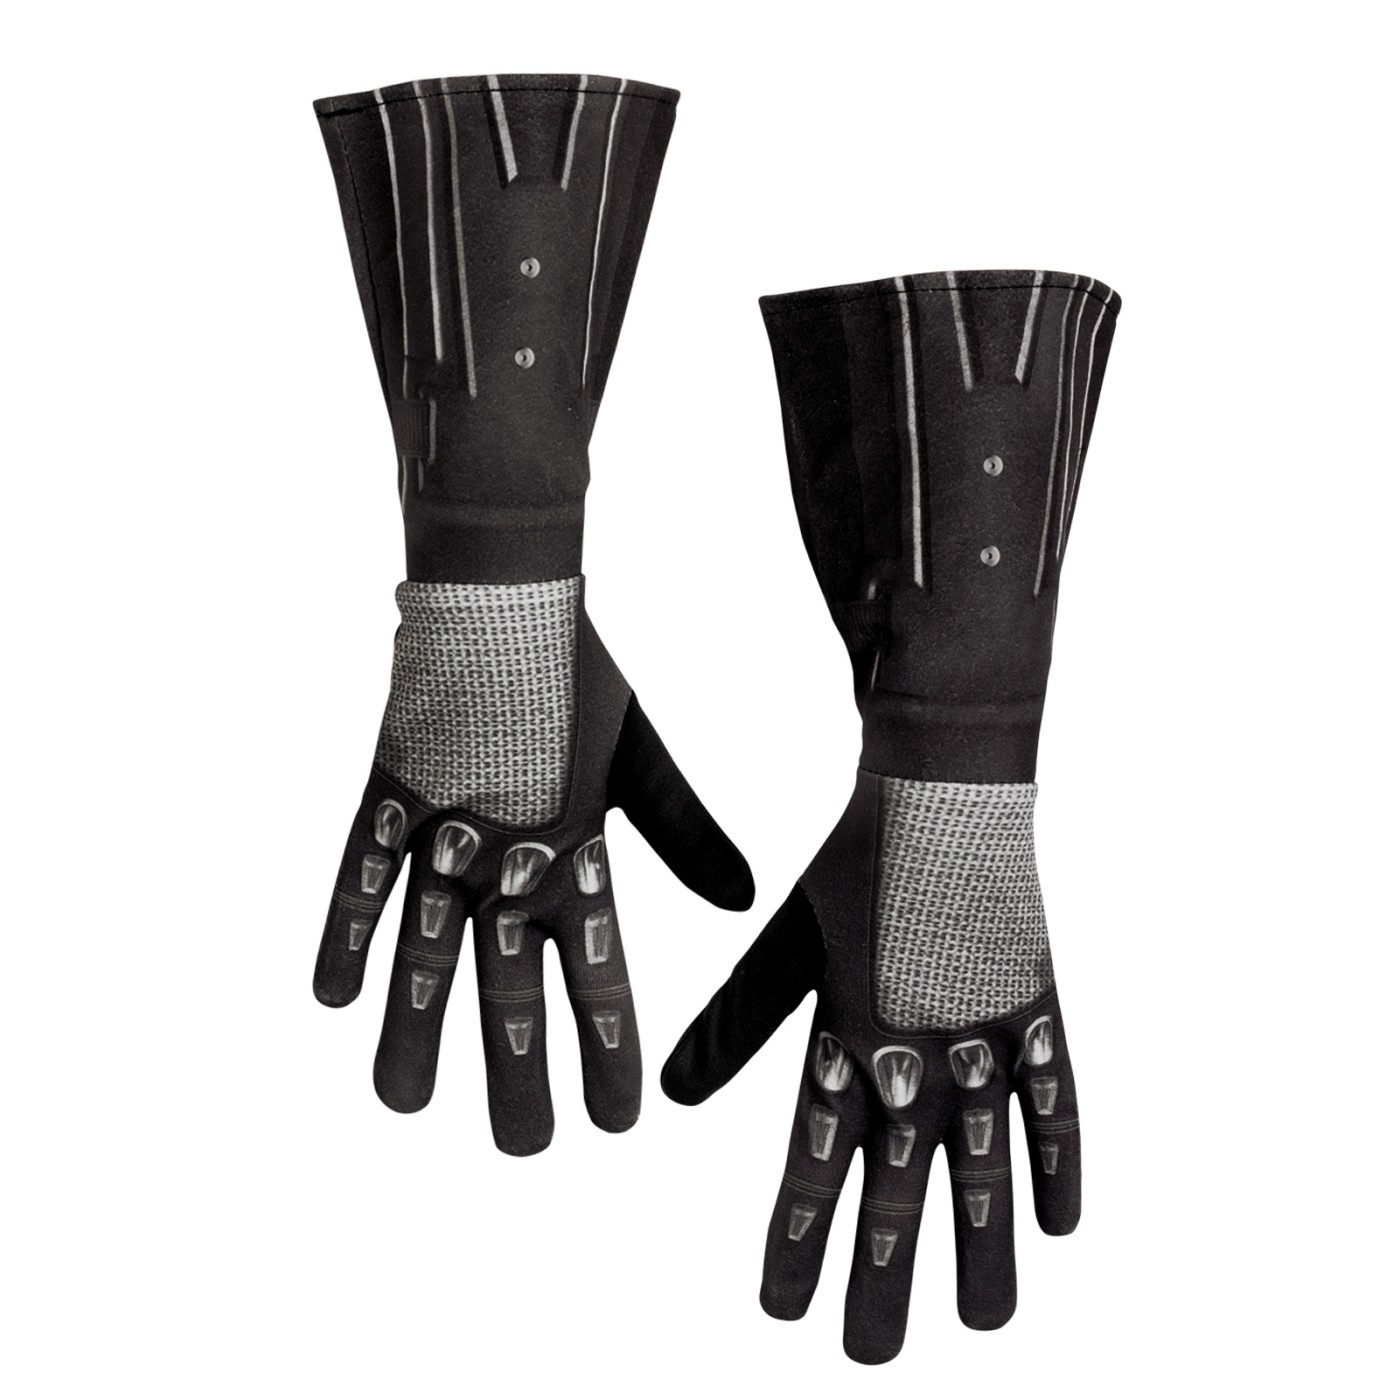 G.I. Joe: Retaliation Snake Eyes Child Deluxe Gloves